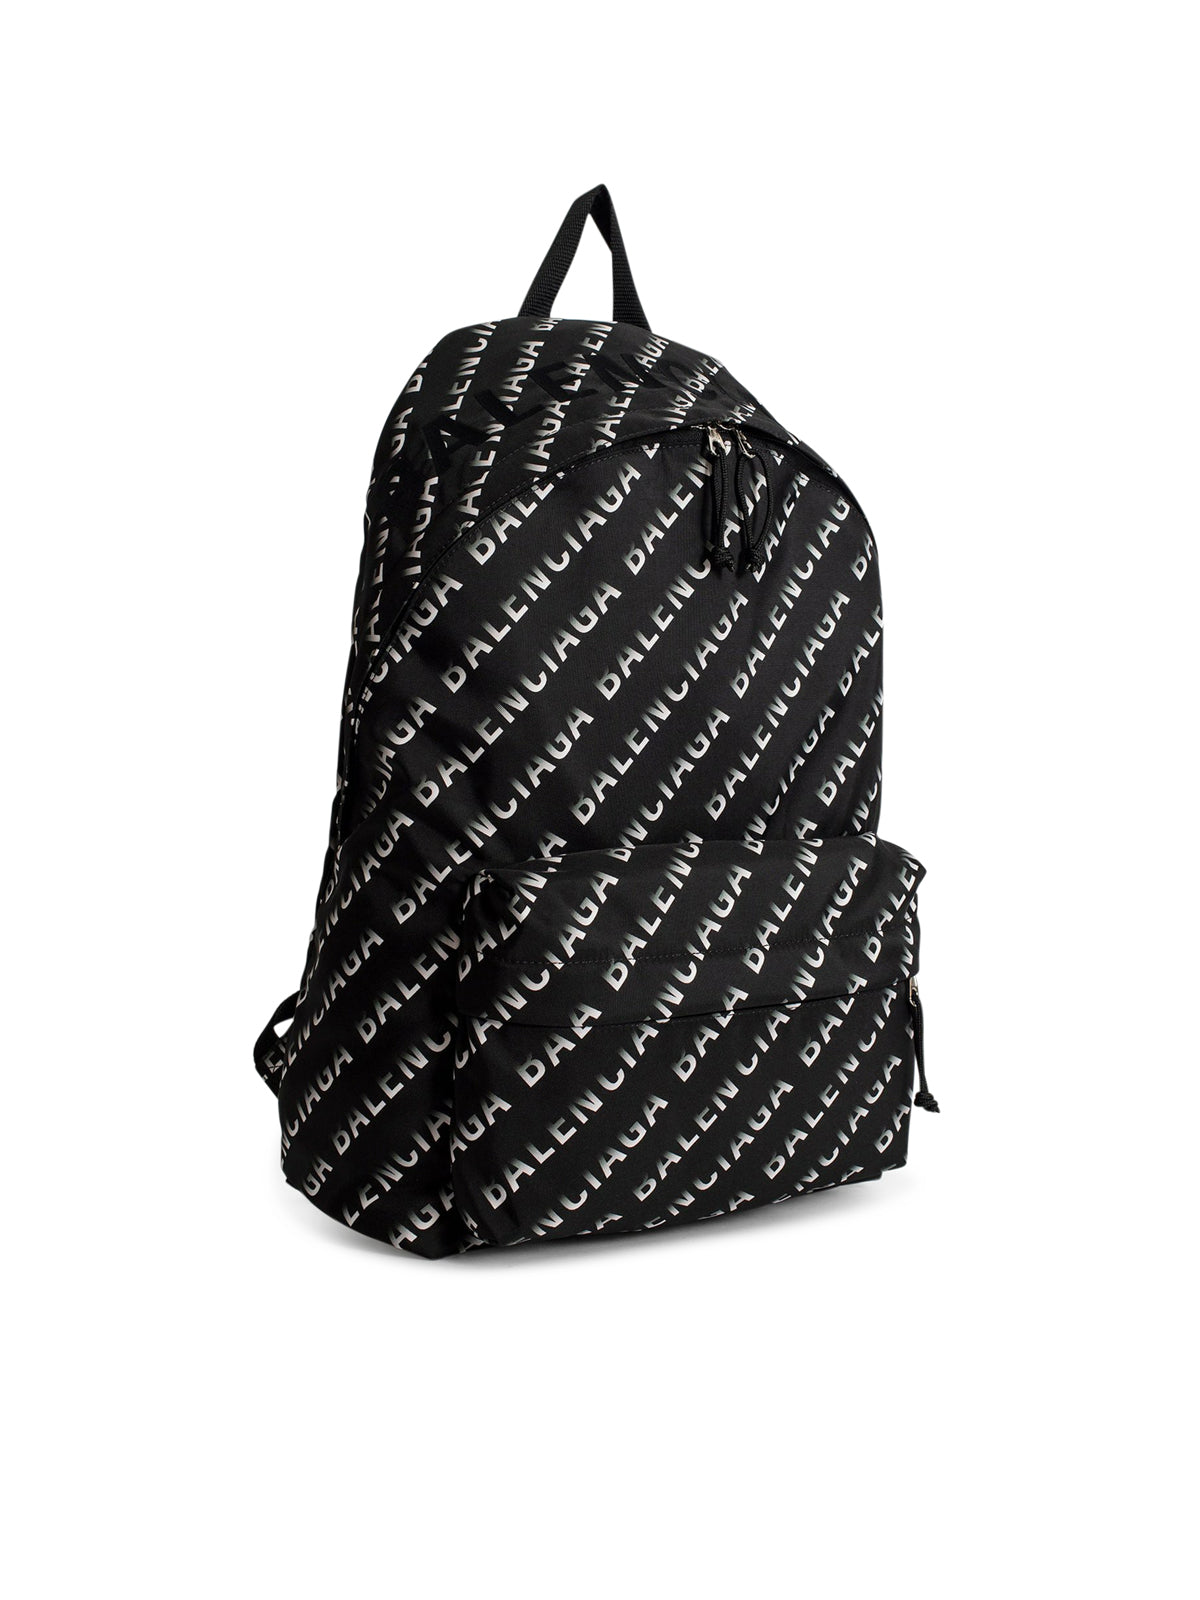 Black and white all over logo wheel backpack